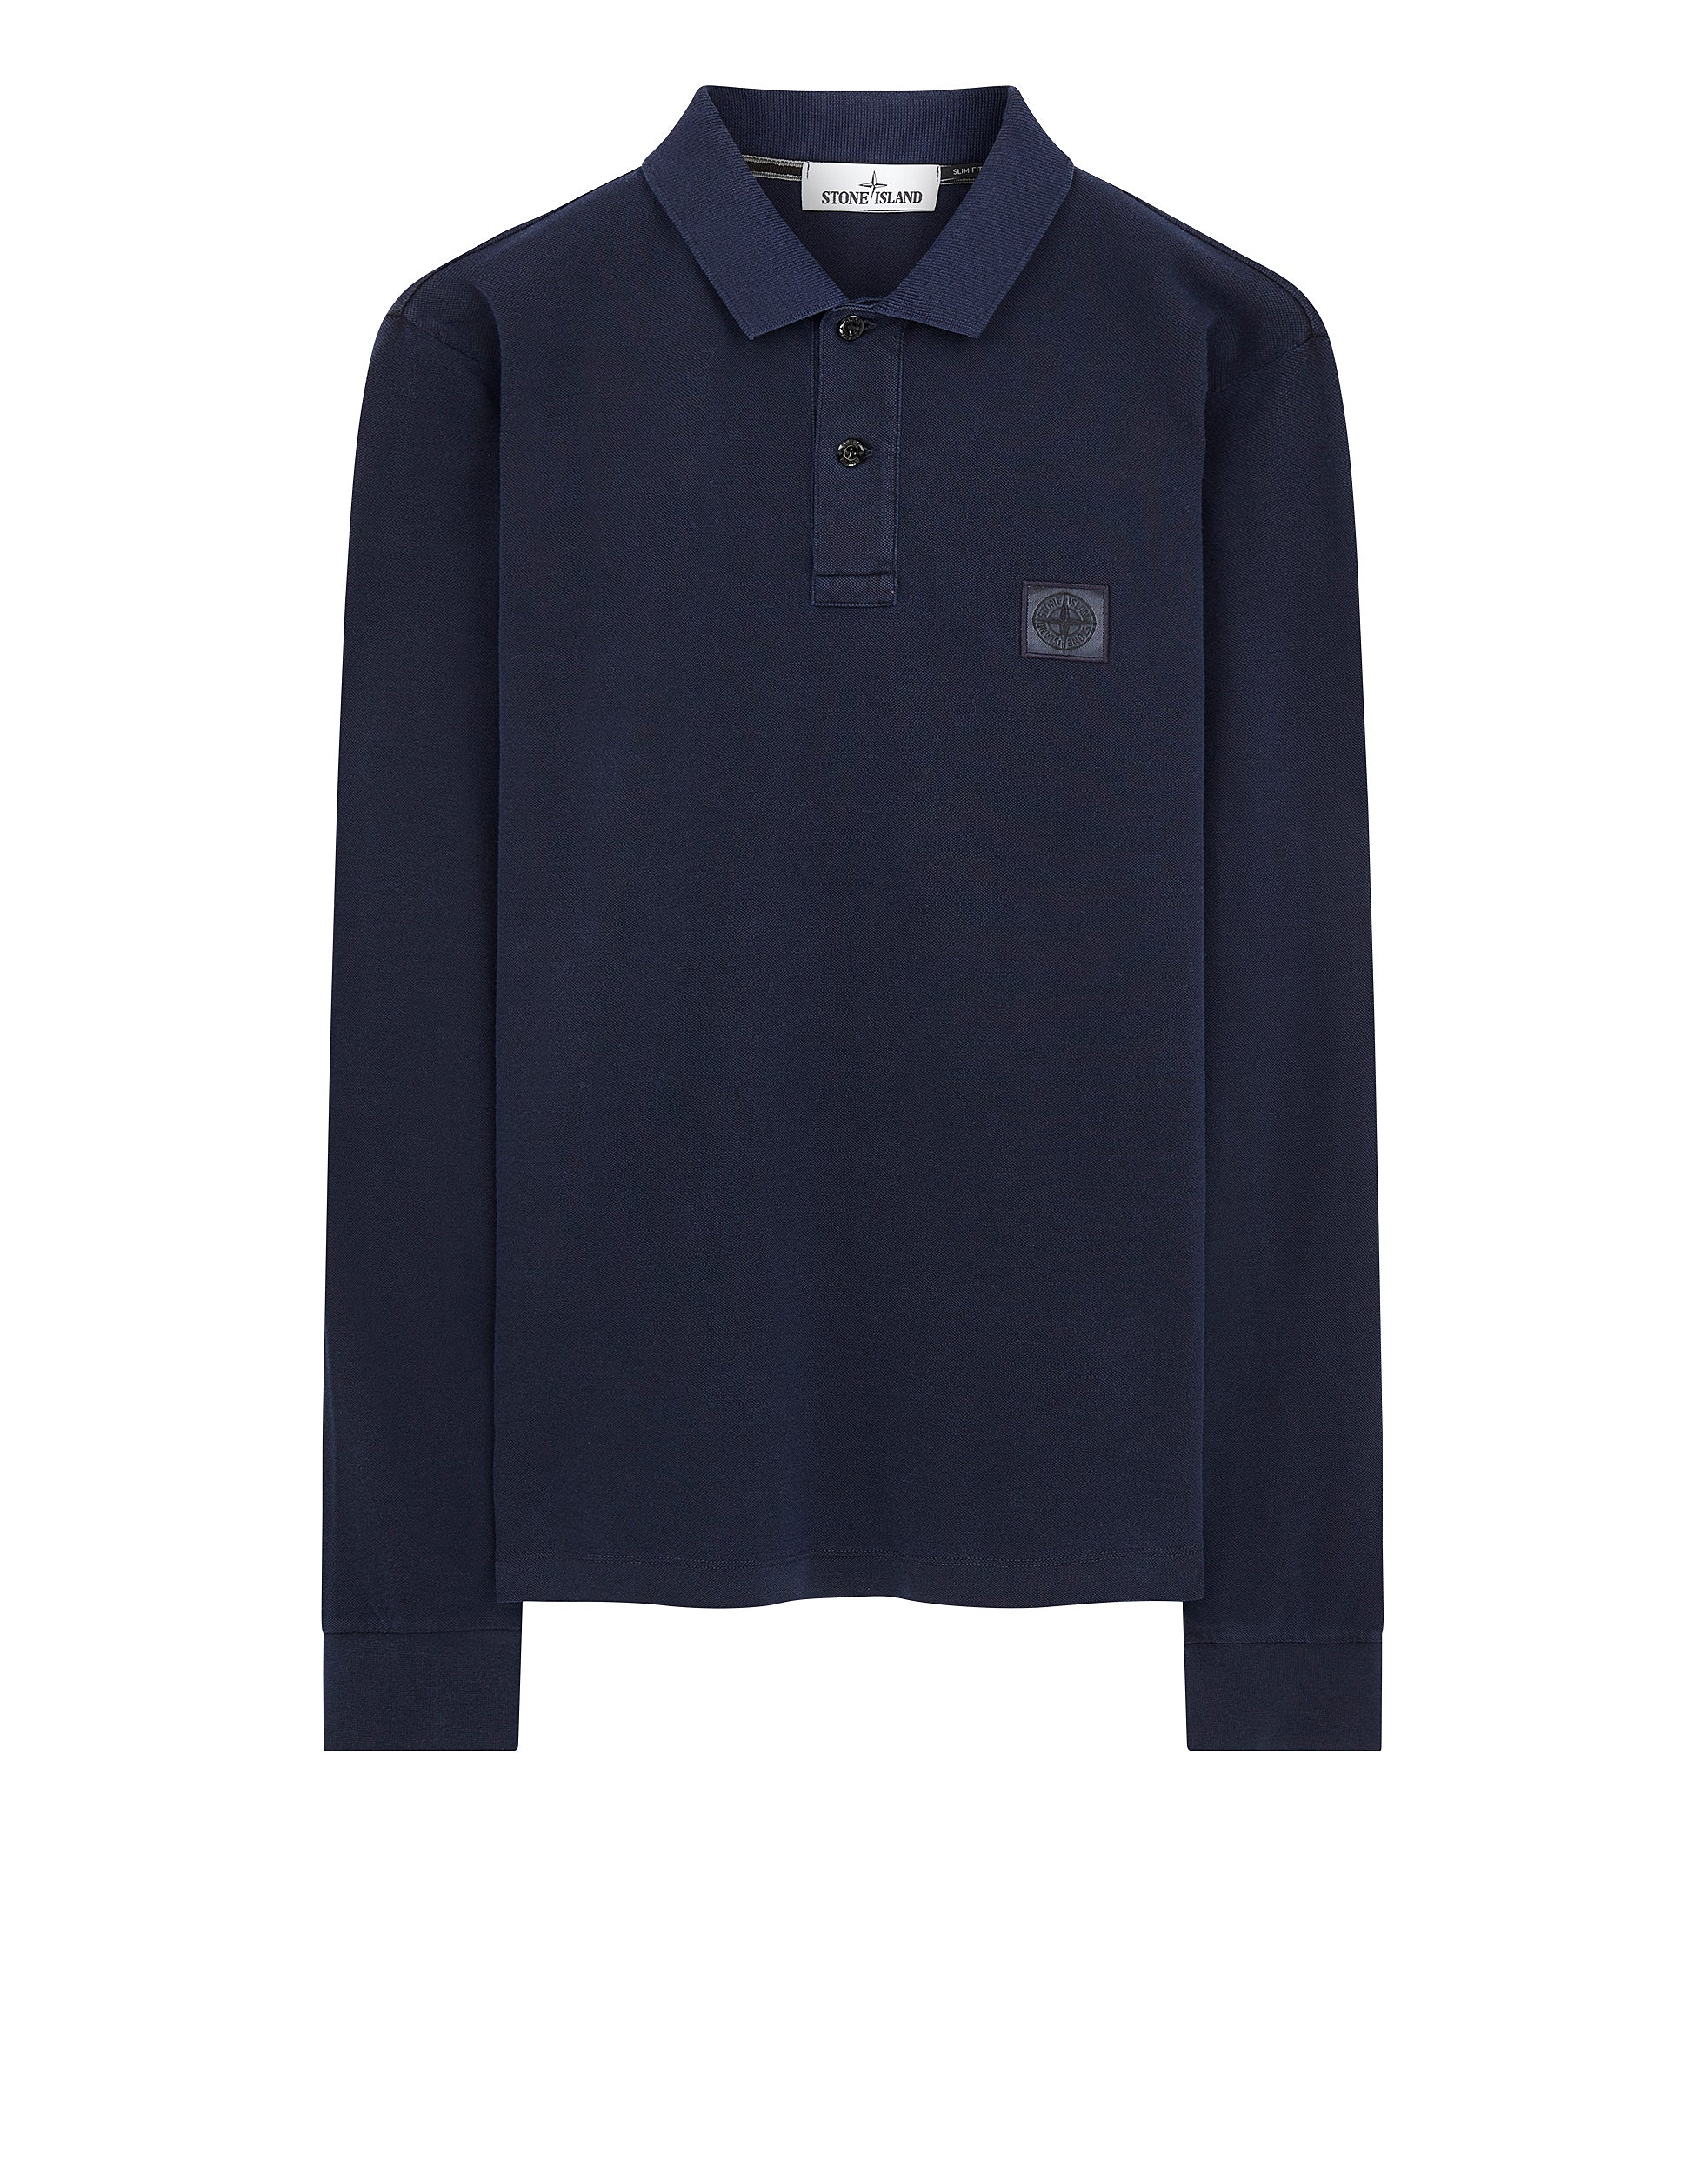 2SS67 PIGMENT DYE Polo Shirt in Ink